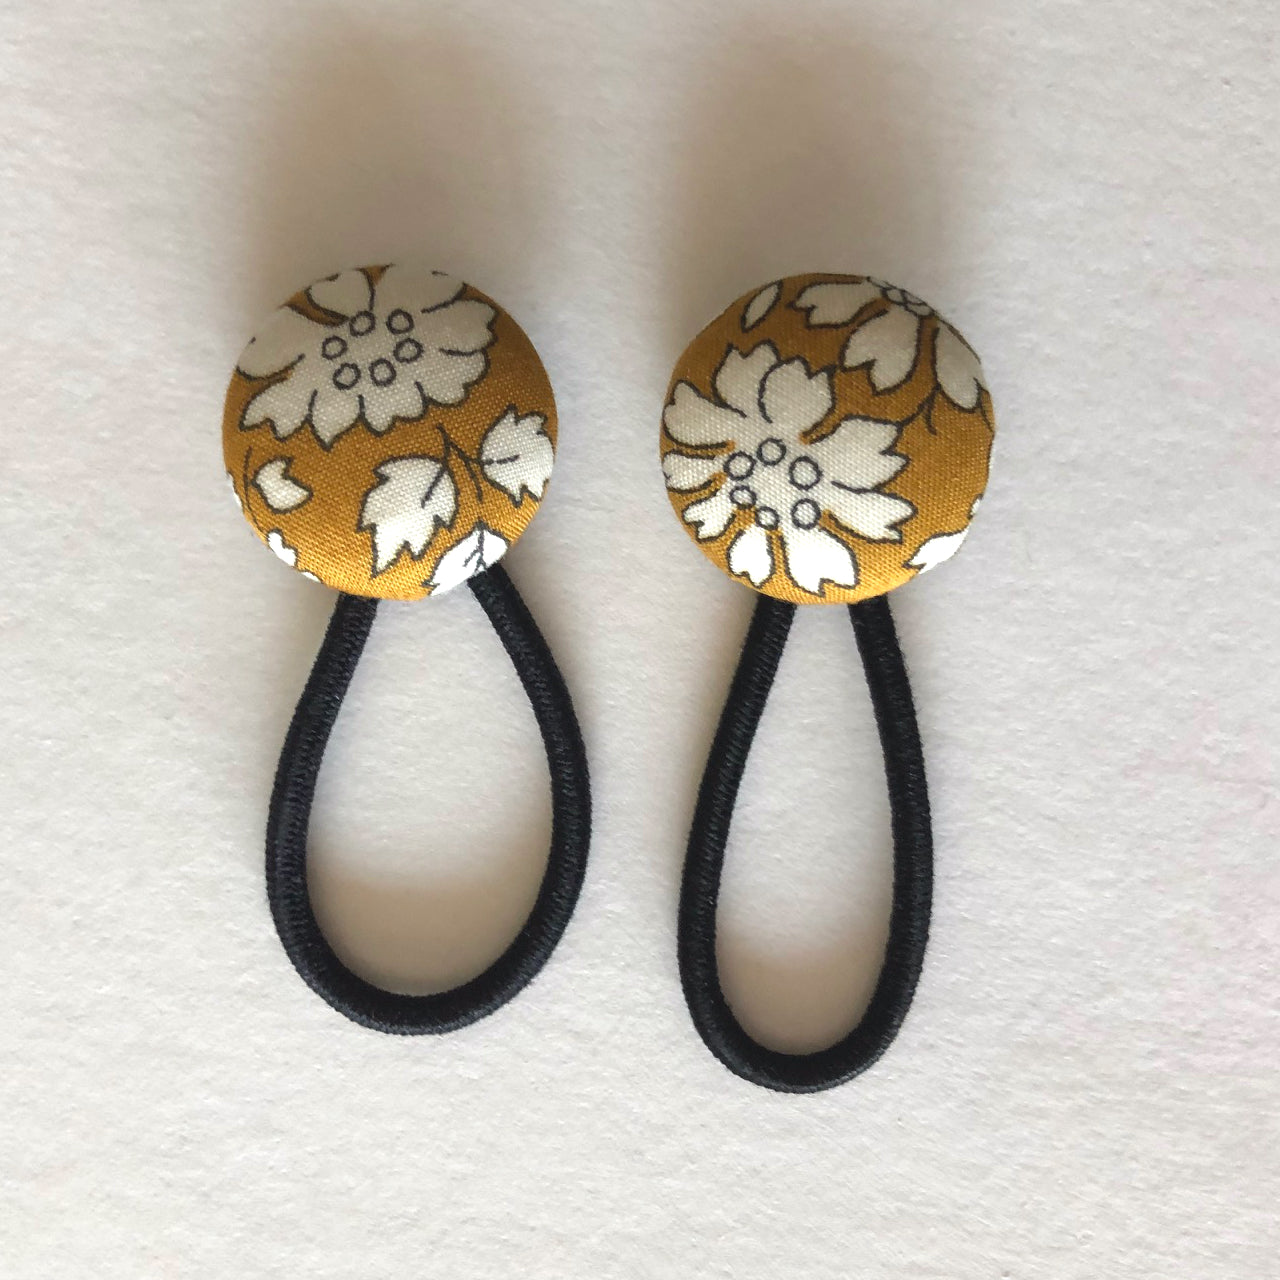 Mustard Floral Liberty of London Fabric Button Hair Ties for Pigtails - Babychelle.com